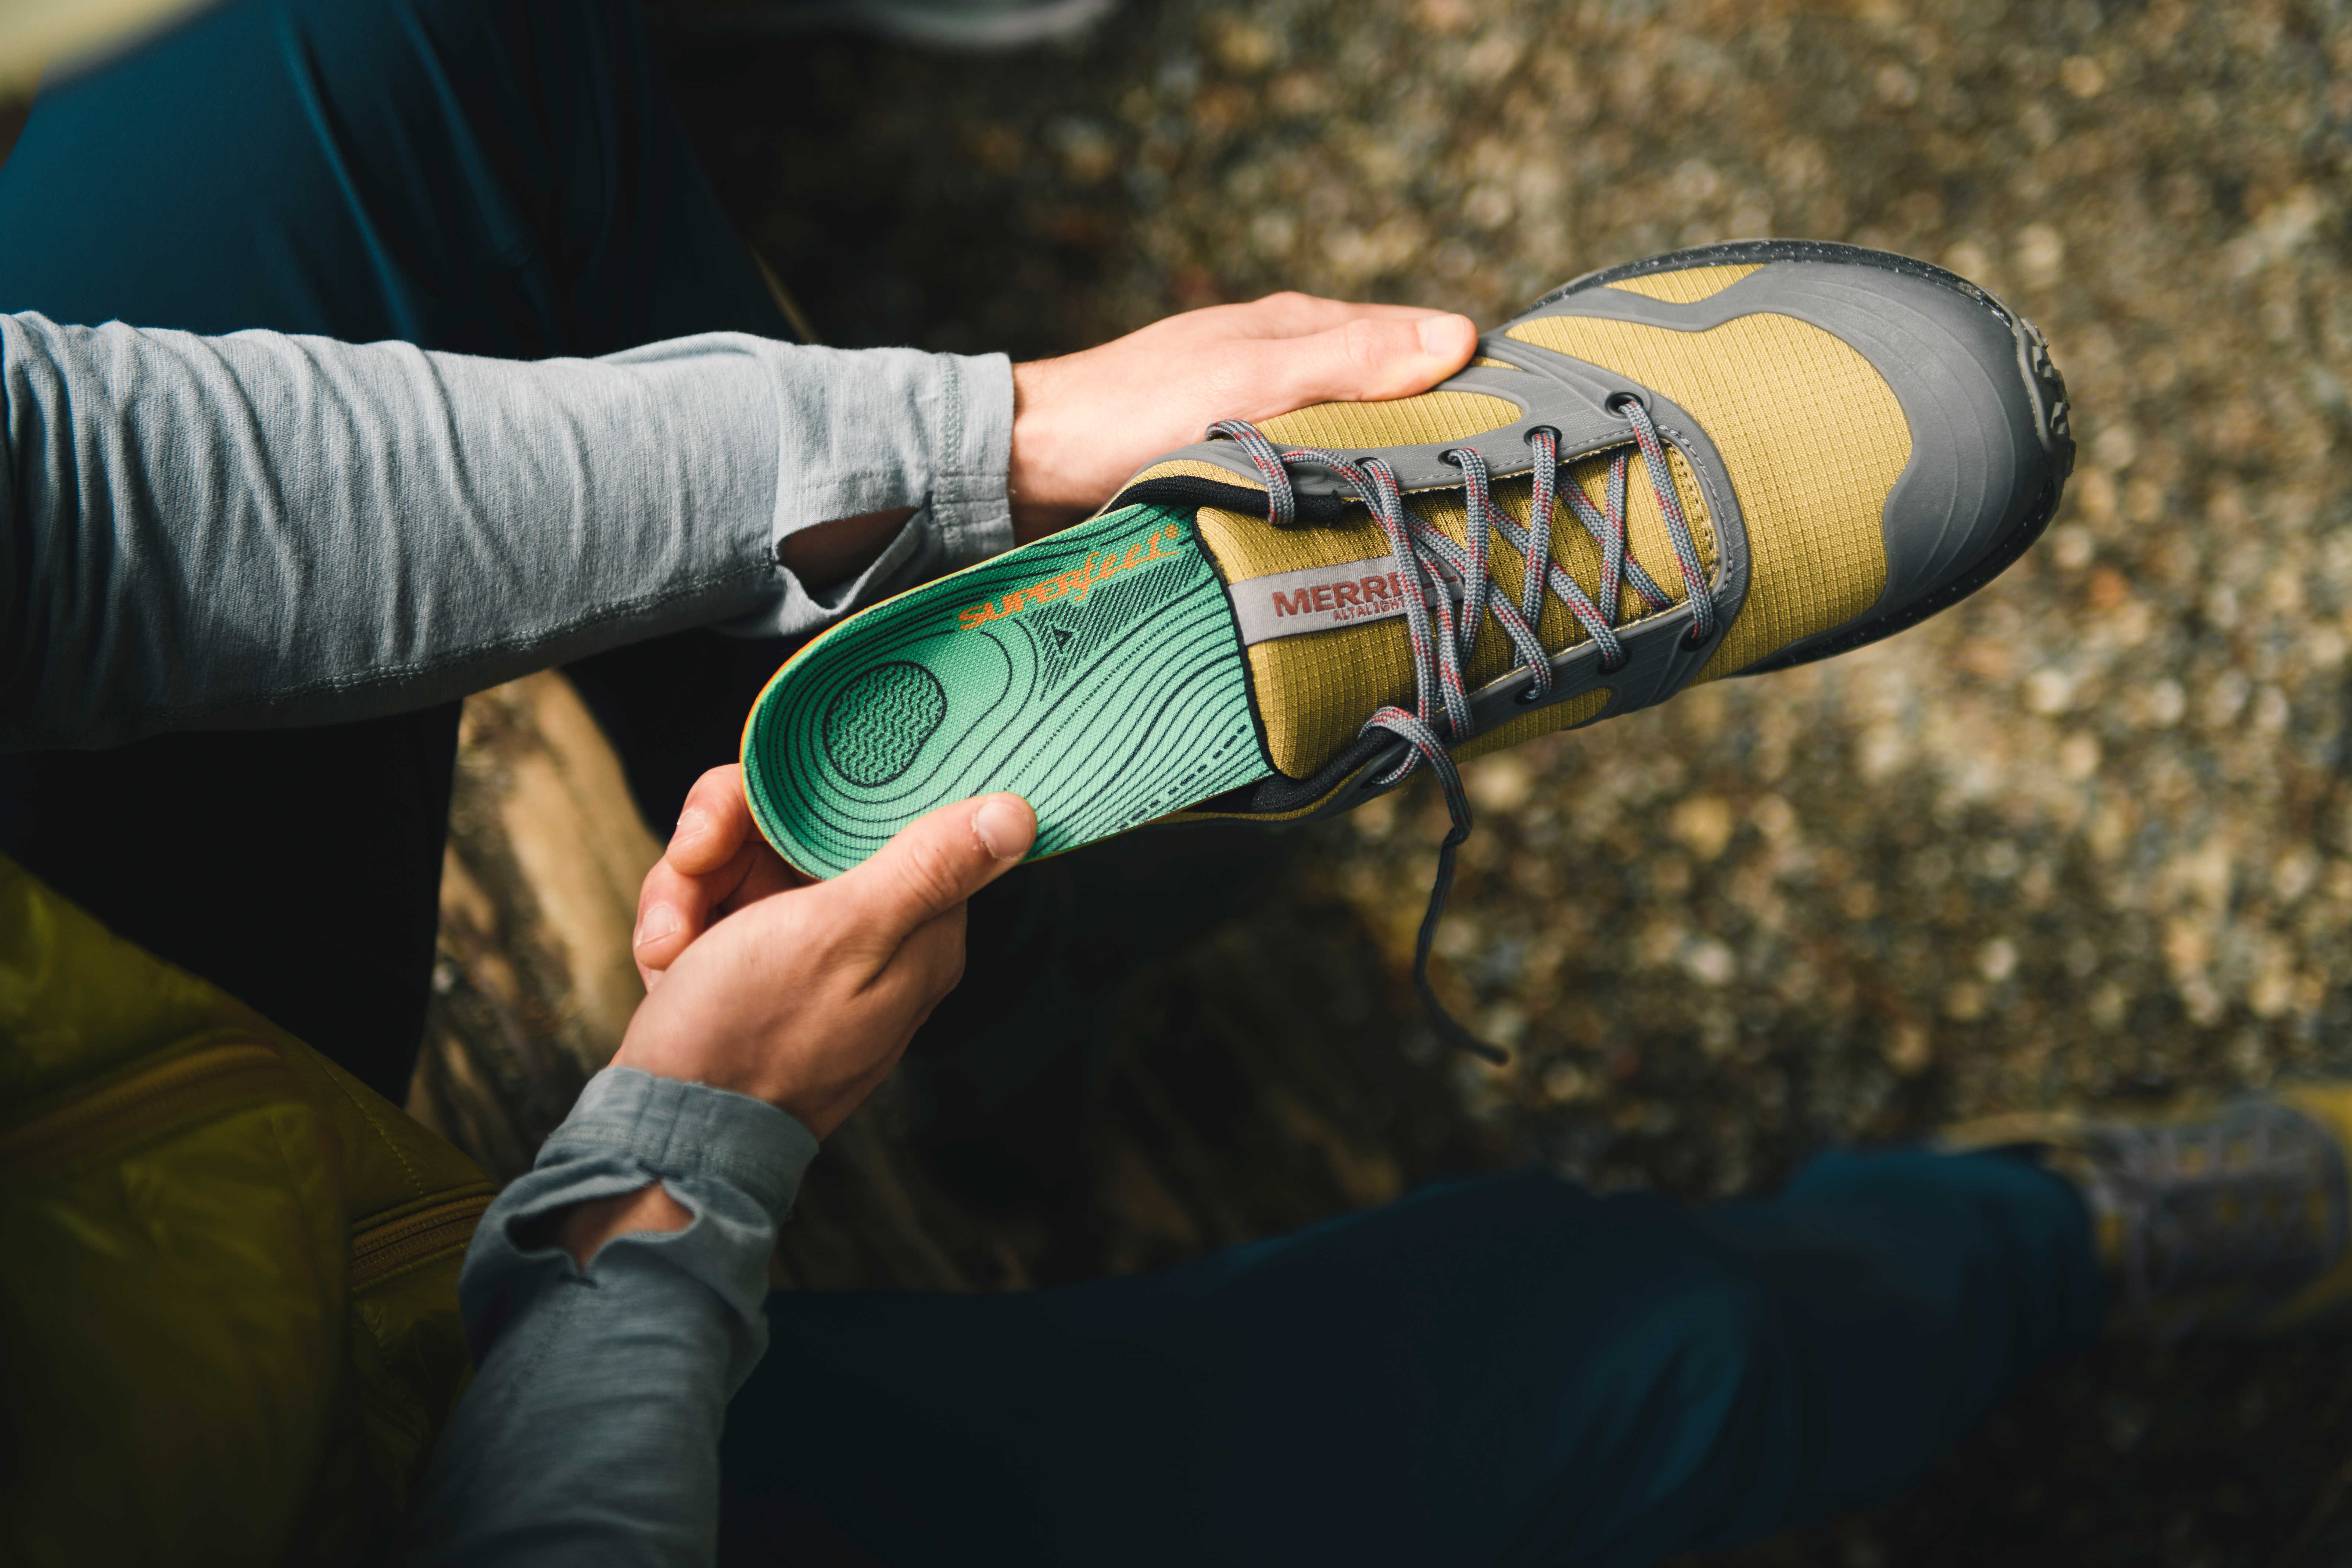 Superfeet green hiking insole being put into a pair of outdoor hiking shoes